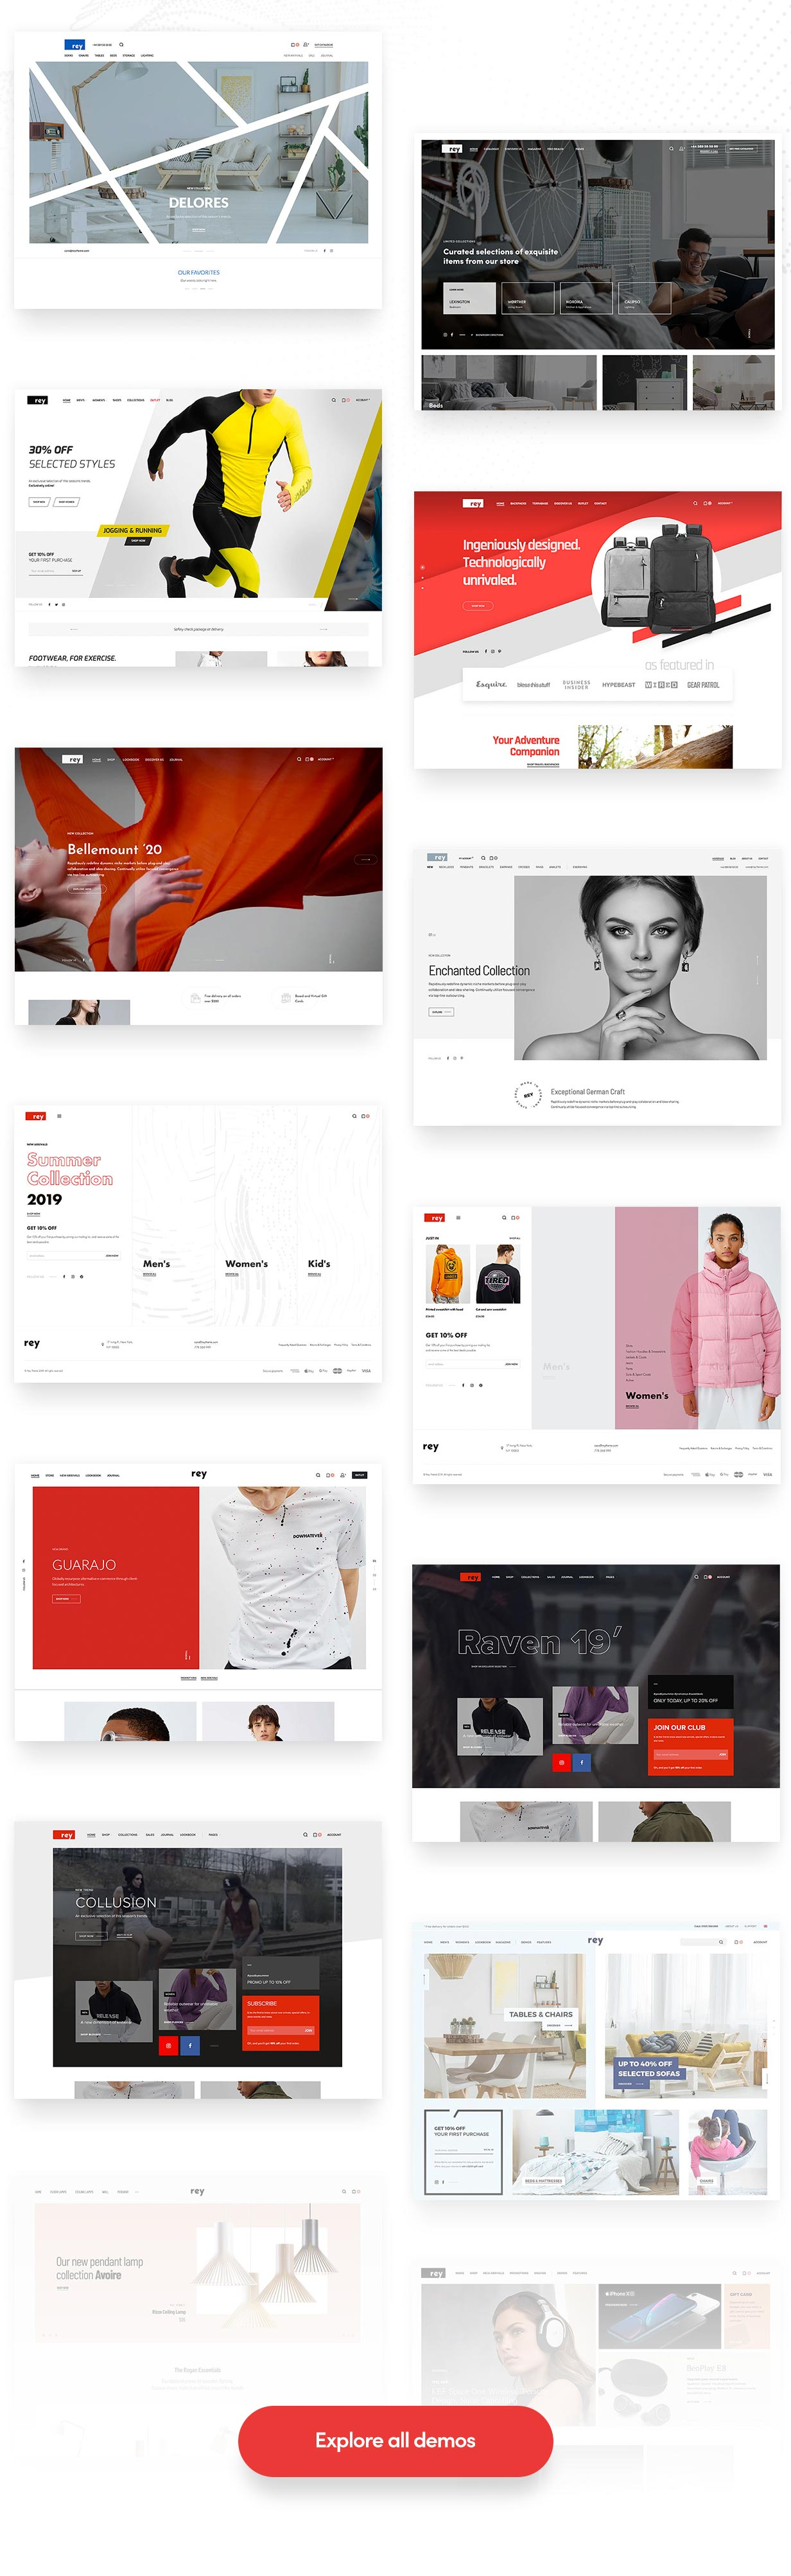 Rey - Multi-purpose & WooCommerce Theme - 4